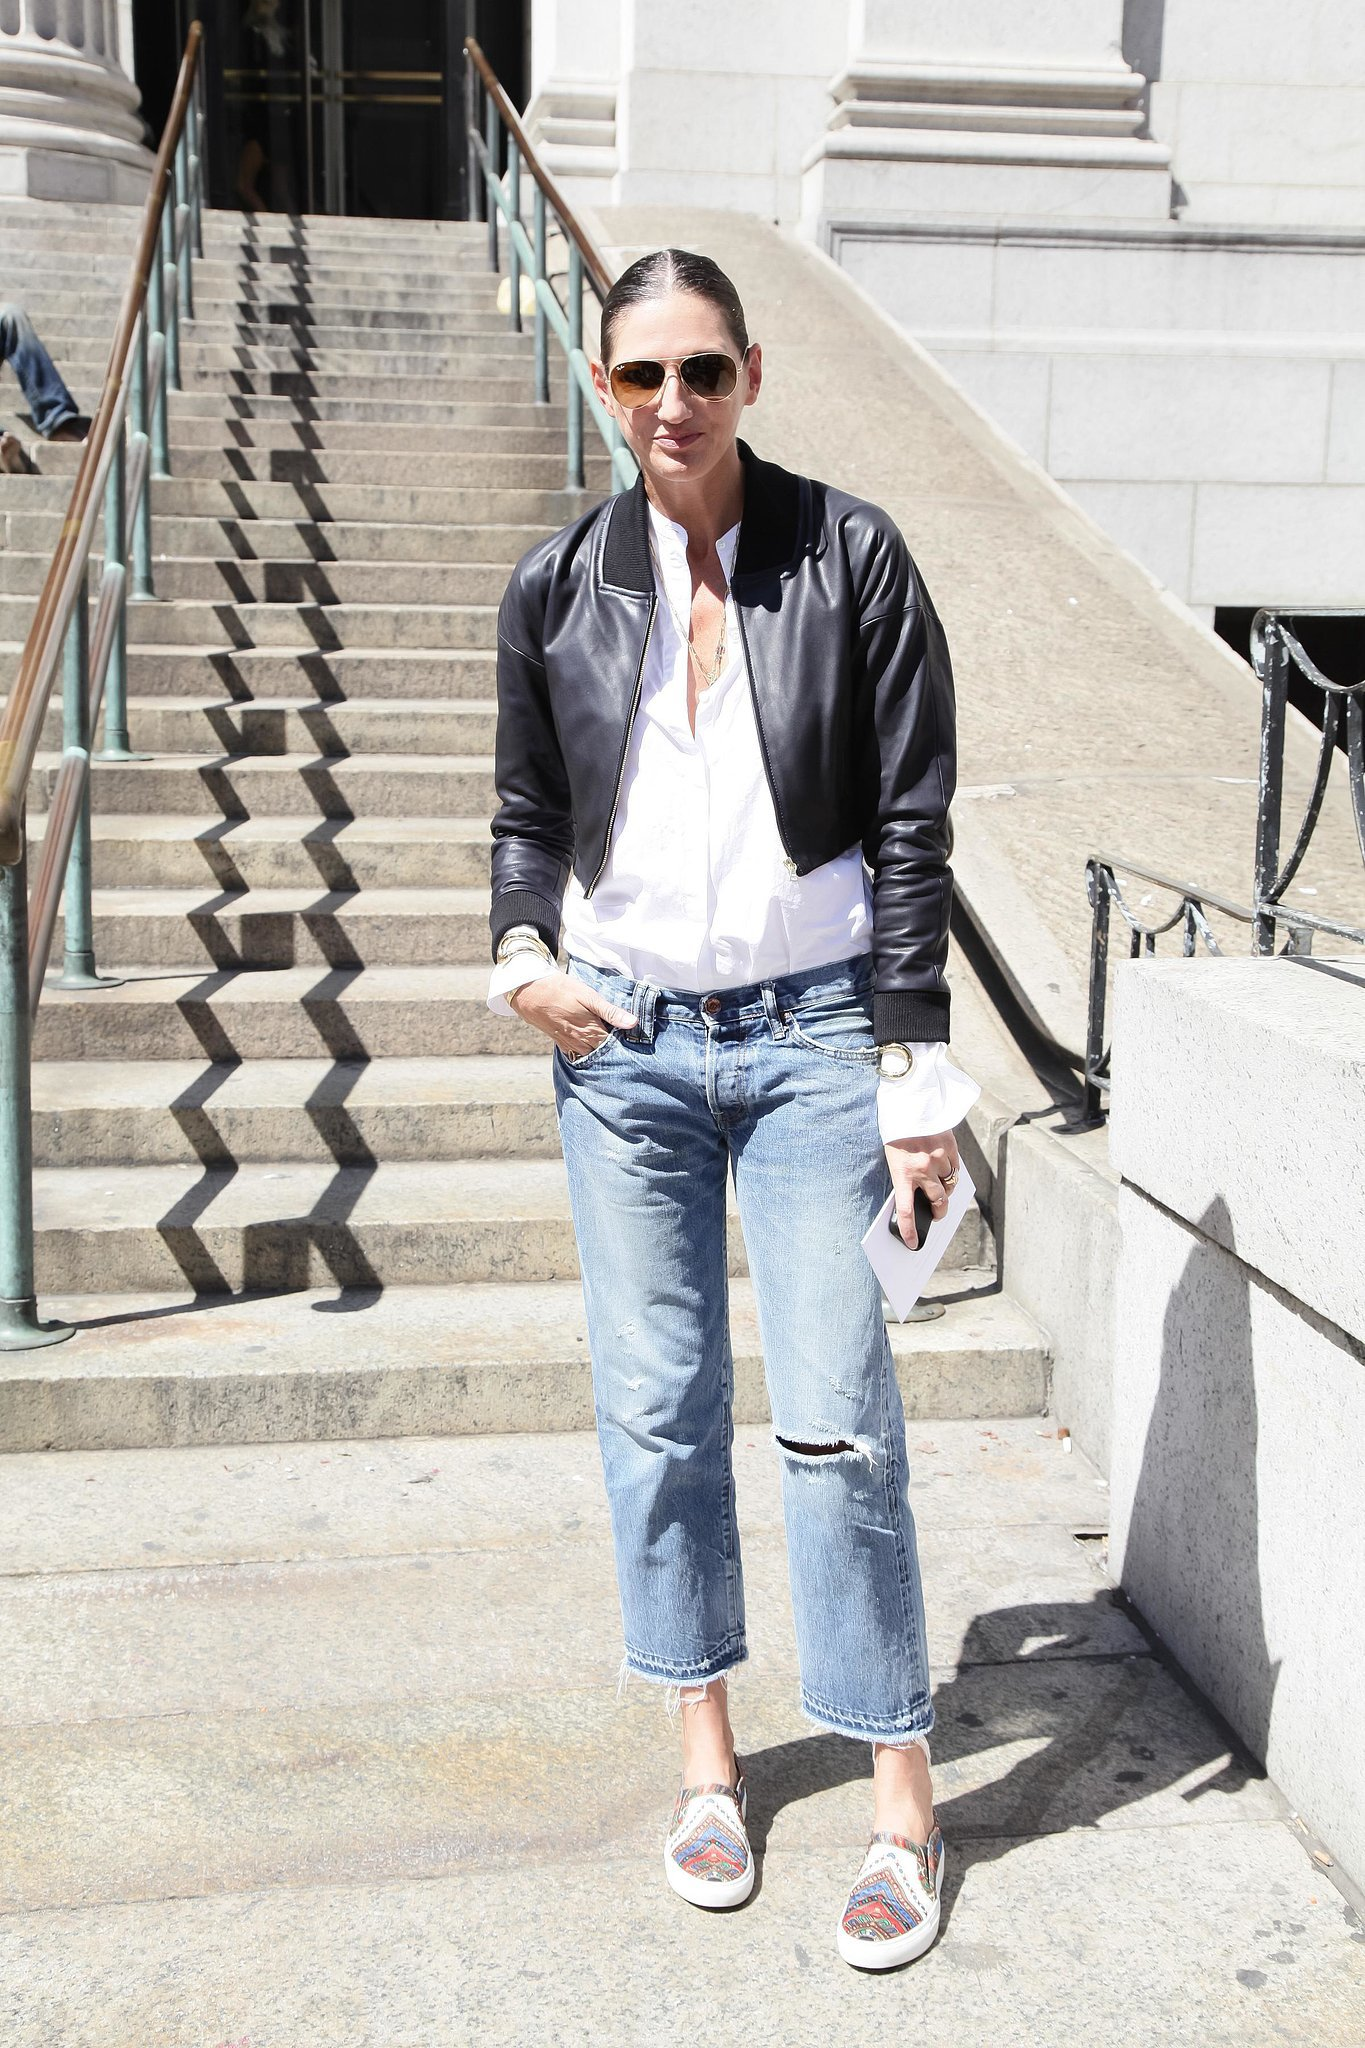 Casual Jenna mixed basics you likely have at home — relaxed boyfriend jeans, a leather ja